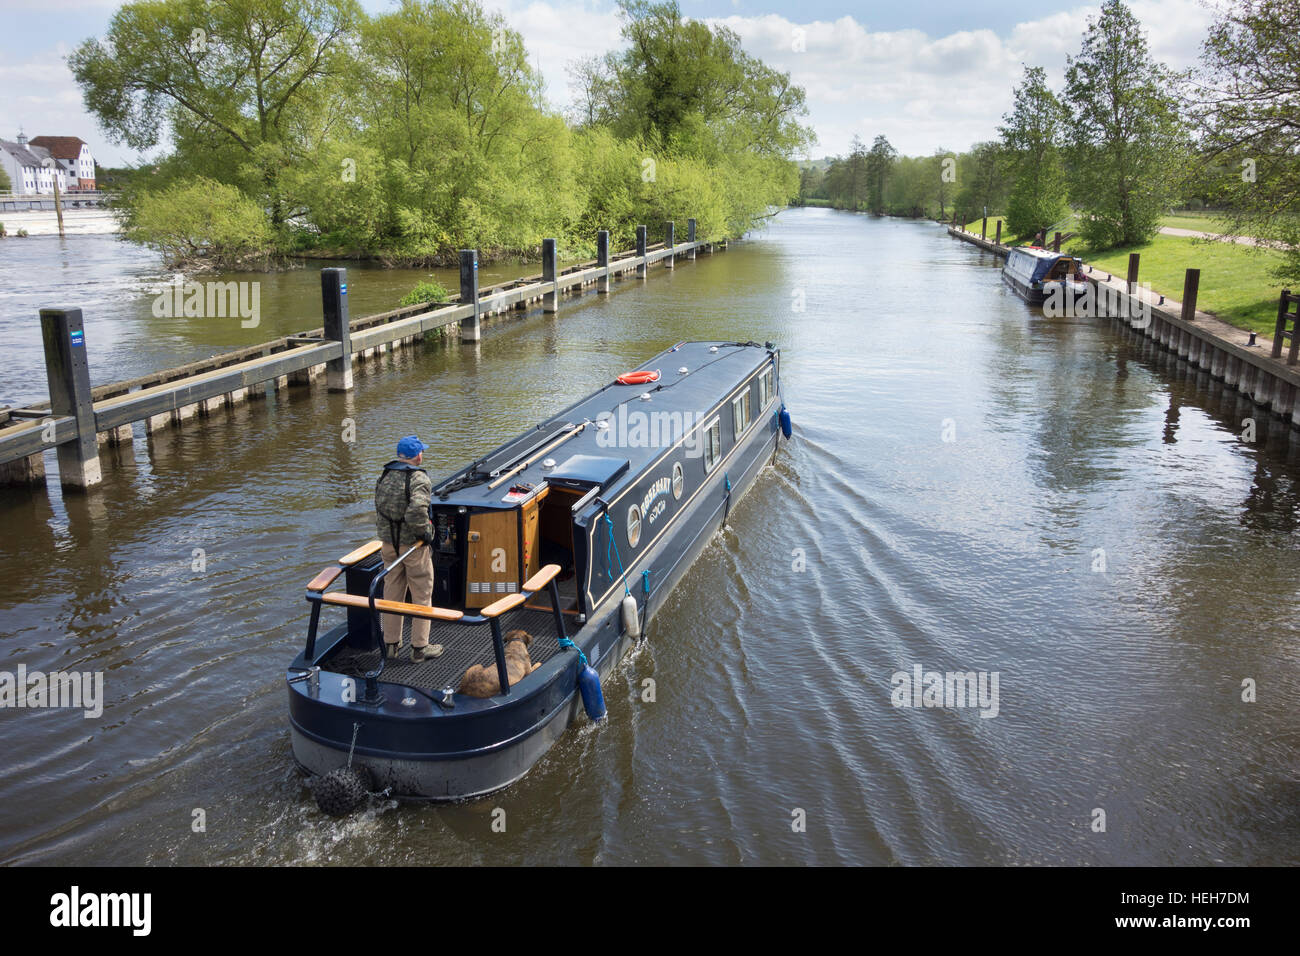 A narrow boat cruising on the river Thames at Hambleden lock, Berkshire, England - Stock Image